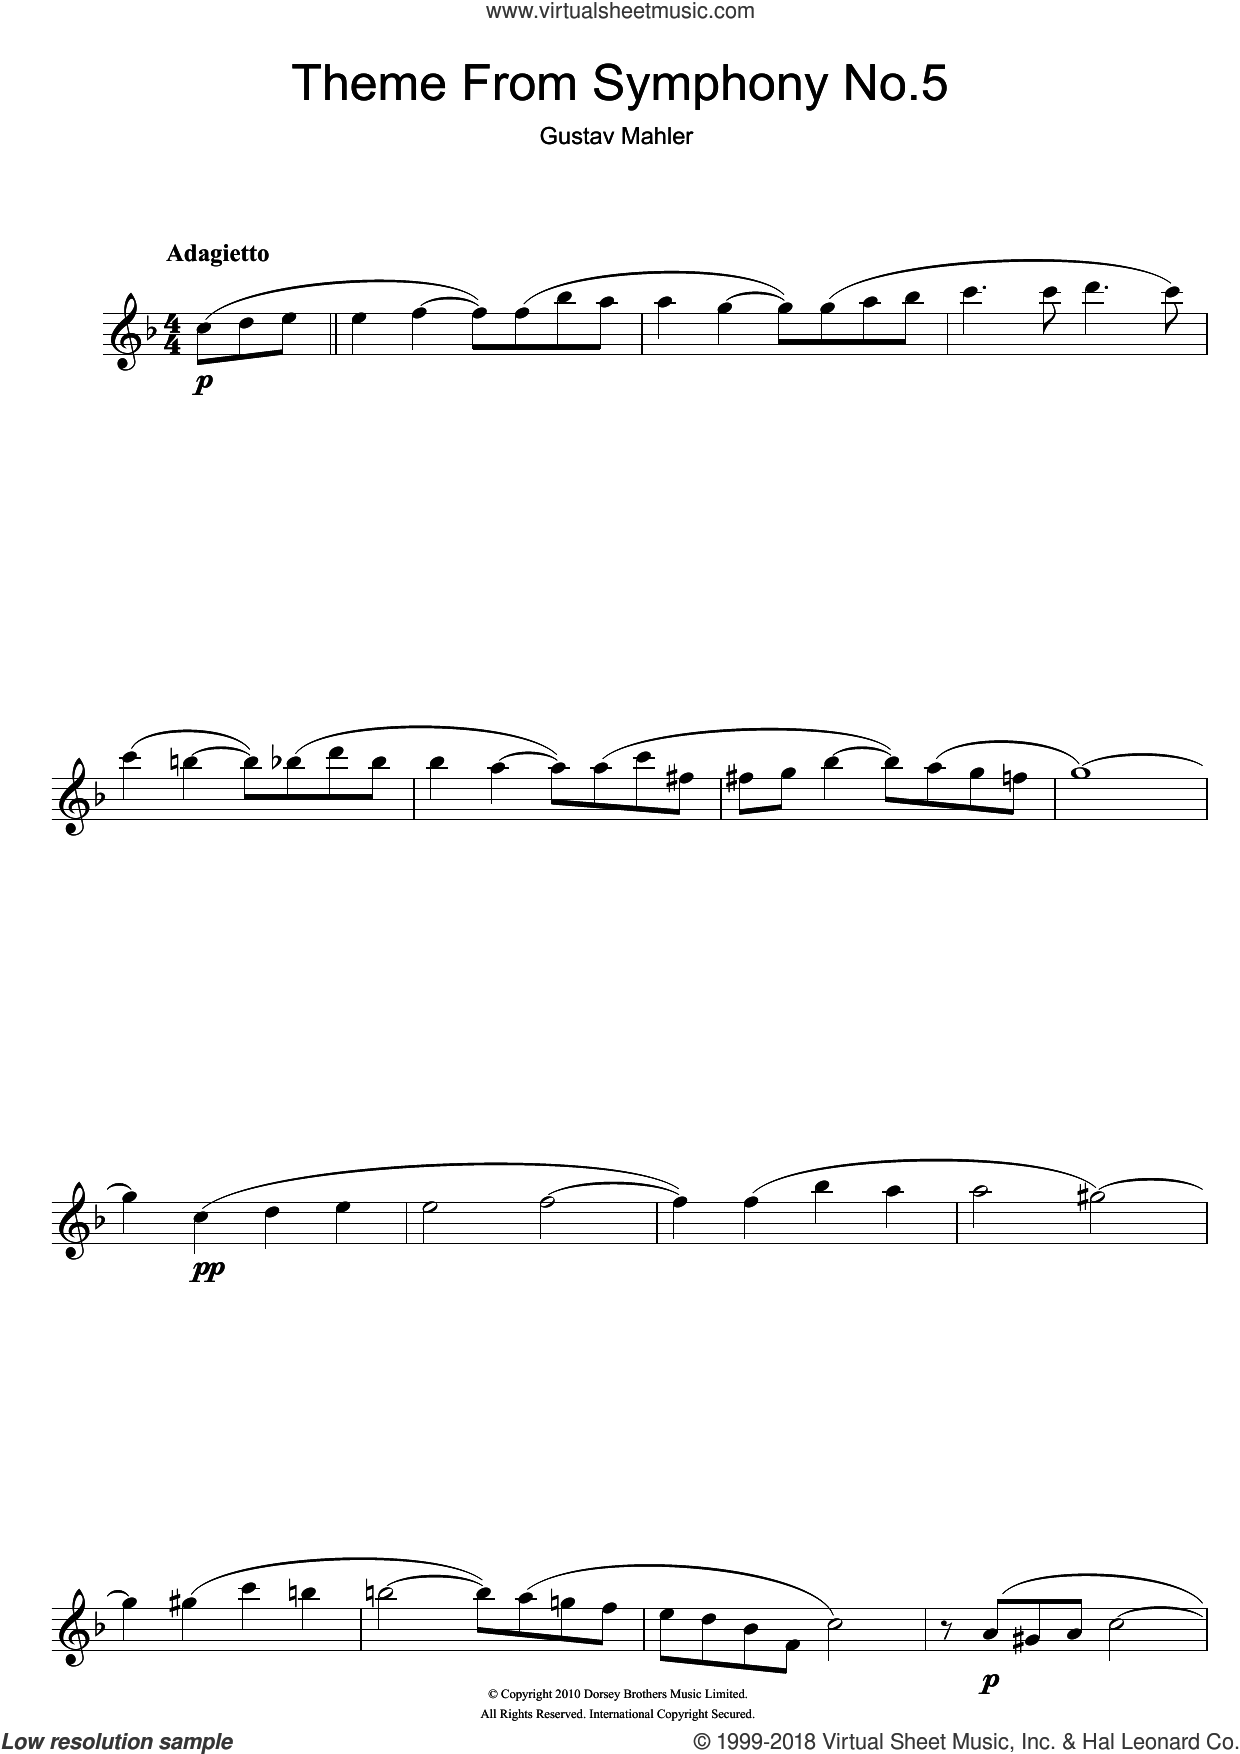 Adagietto from Symphony No.5 (4th Movement) sheet music for flute solo by Gustav Mahler, classical score, intermediate skill level